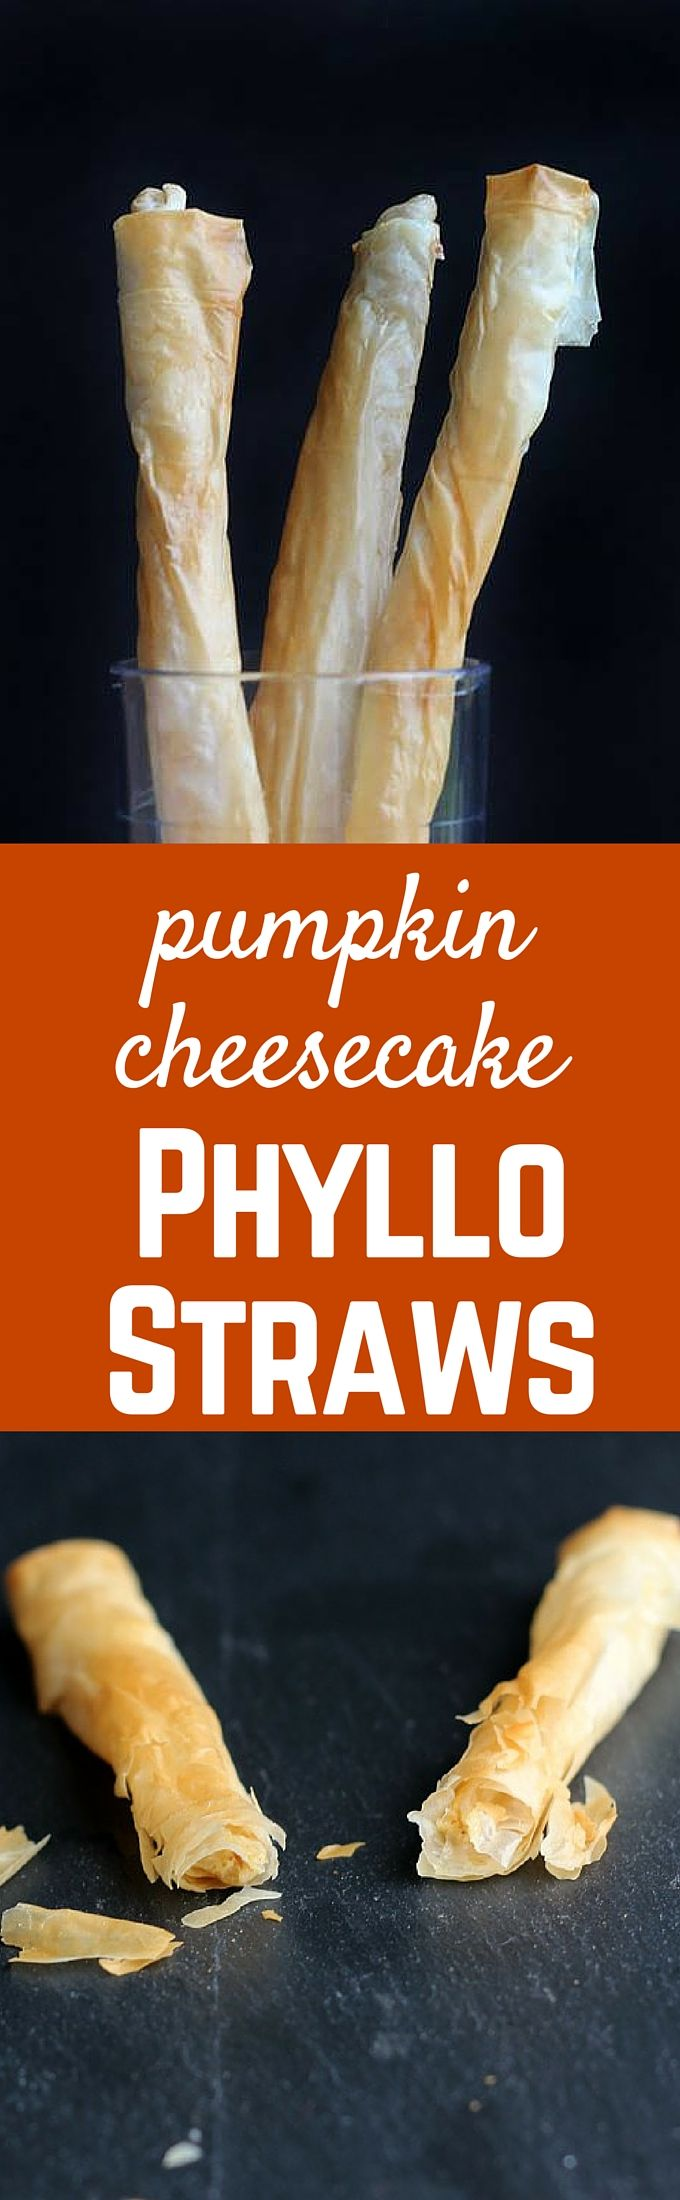 These Pumpkin Cheesecake Phyllo Straws are a great way to enjoy a decadent dessert without feeling weighed down. The flaky layers of phyllo dough turn this into a gourmet treat. Get the recipe on RachelCooks.com!